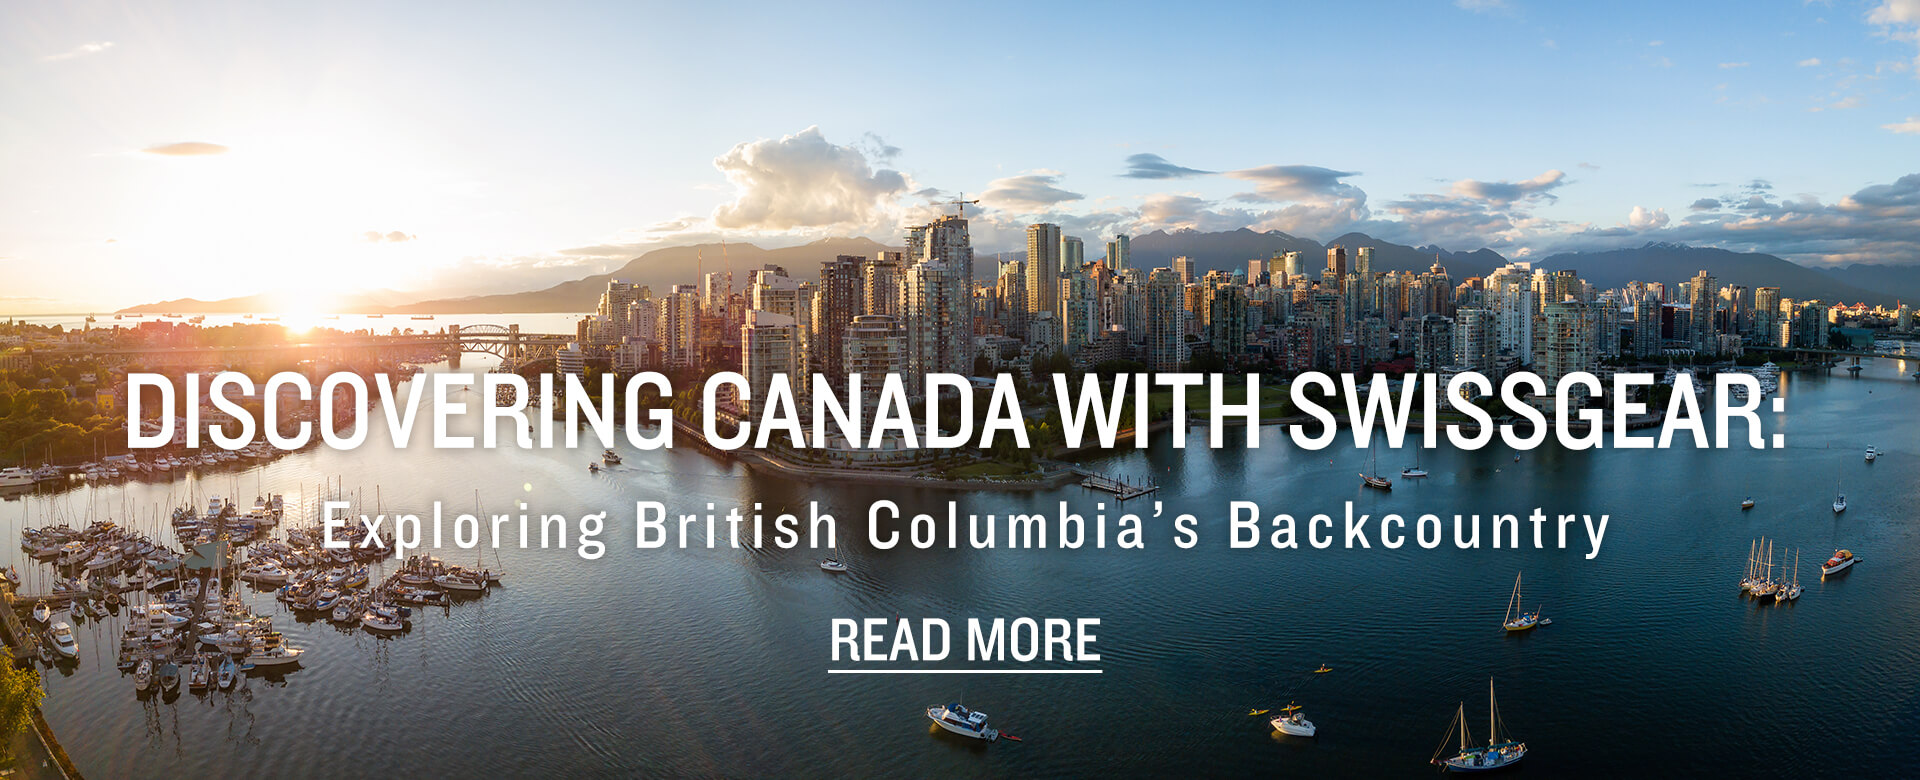 British Columbia: Exploring Canada's Backcountry